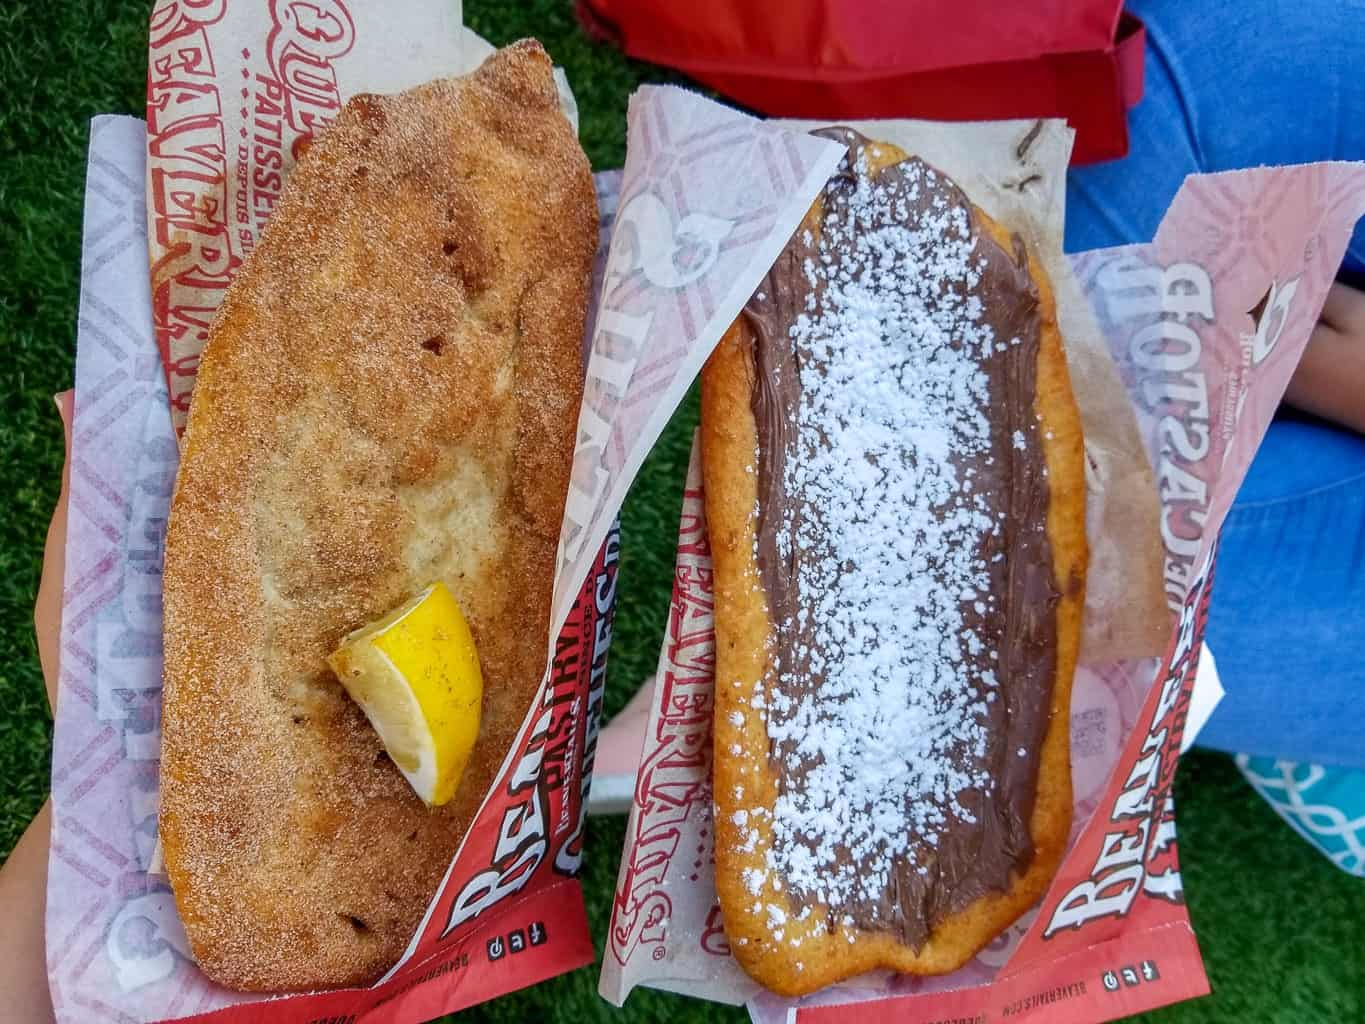 Eating Beavertails is one of the reasons to visit Canada